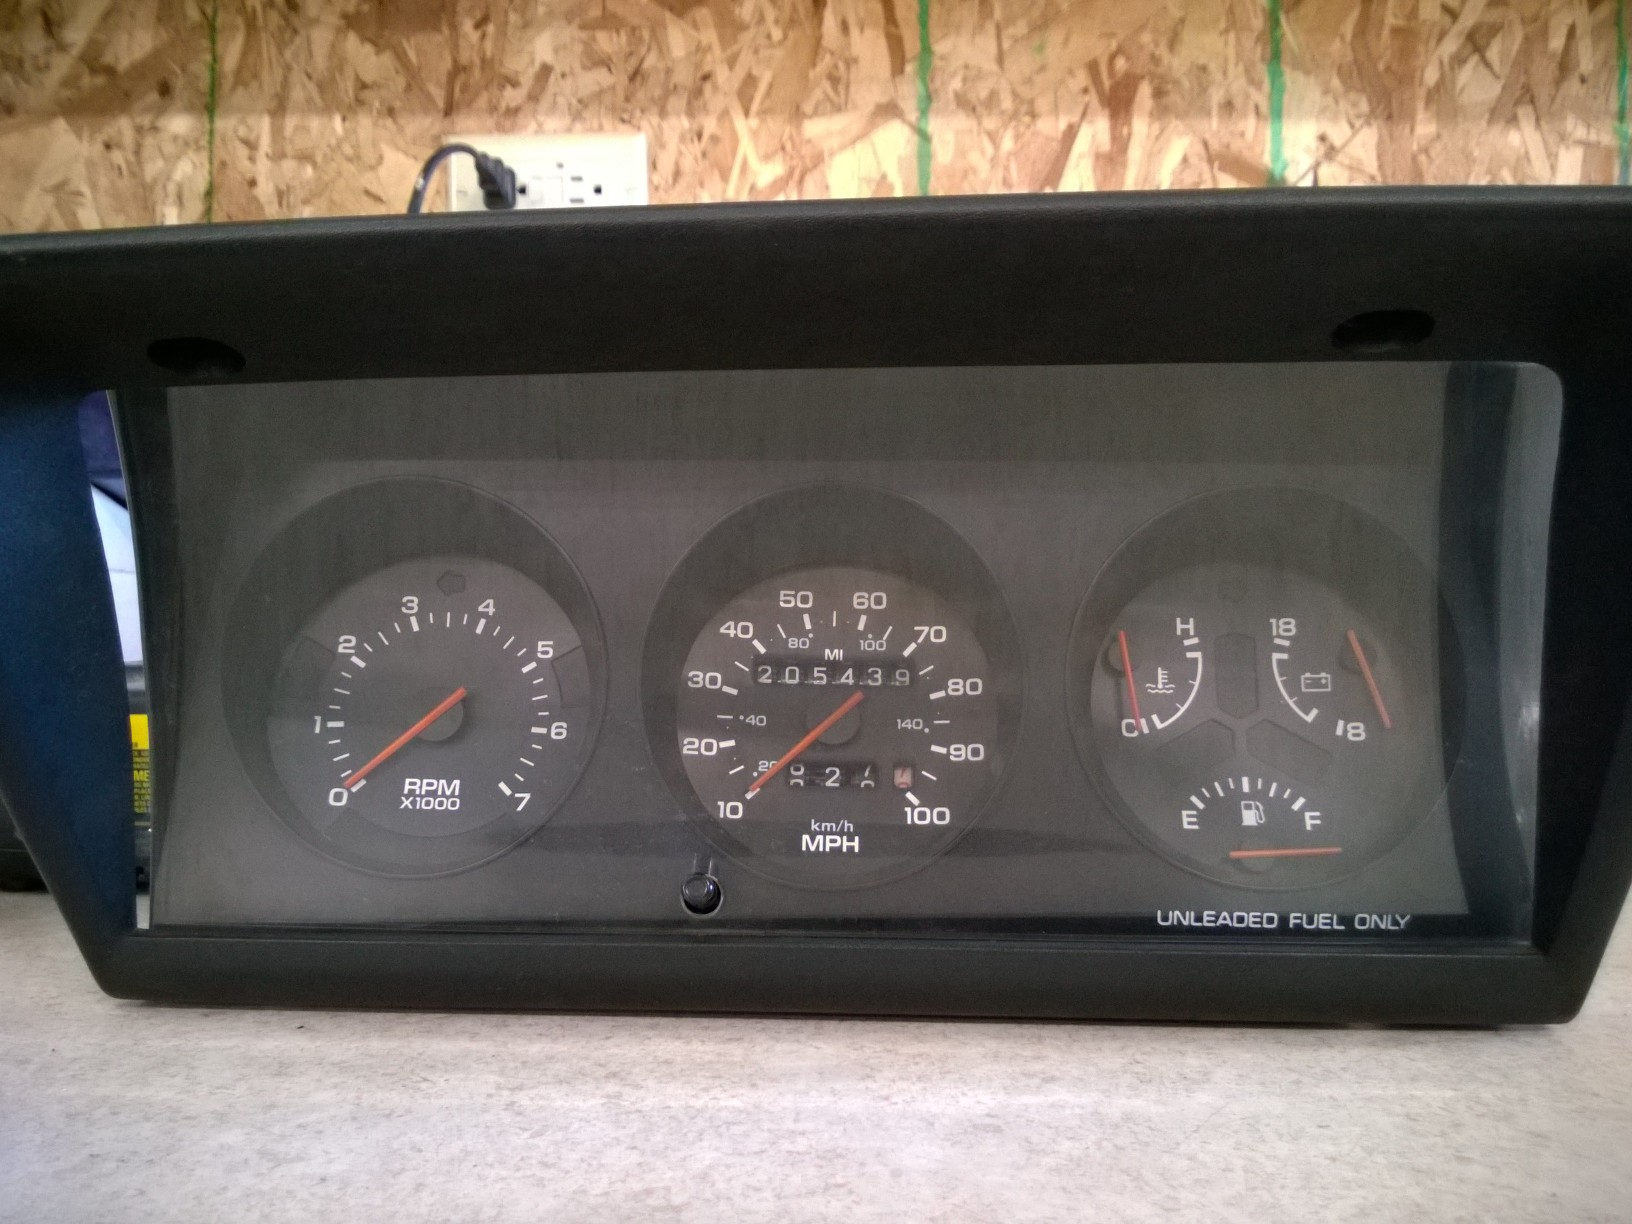 Electronics 1990 Dodge Omni Instrument Cluster With Bezel And 89 Wiring Wire Odo Shows Over 200k Miles Hard To Find Only Includes Perfect Too 75 Free Standard Shipping 48 Continental States